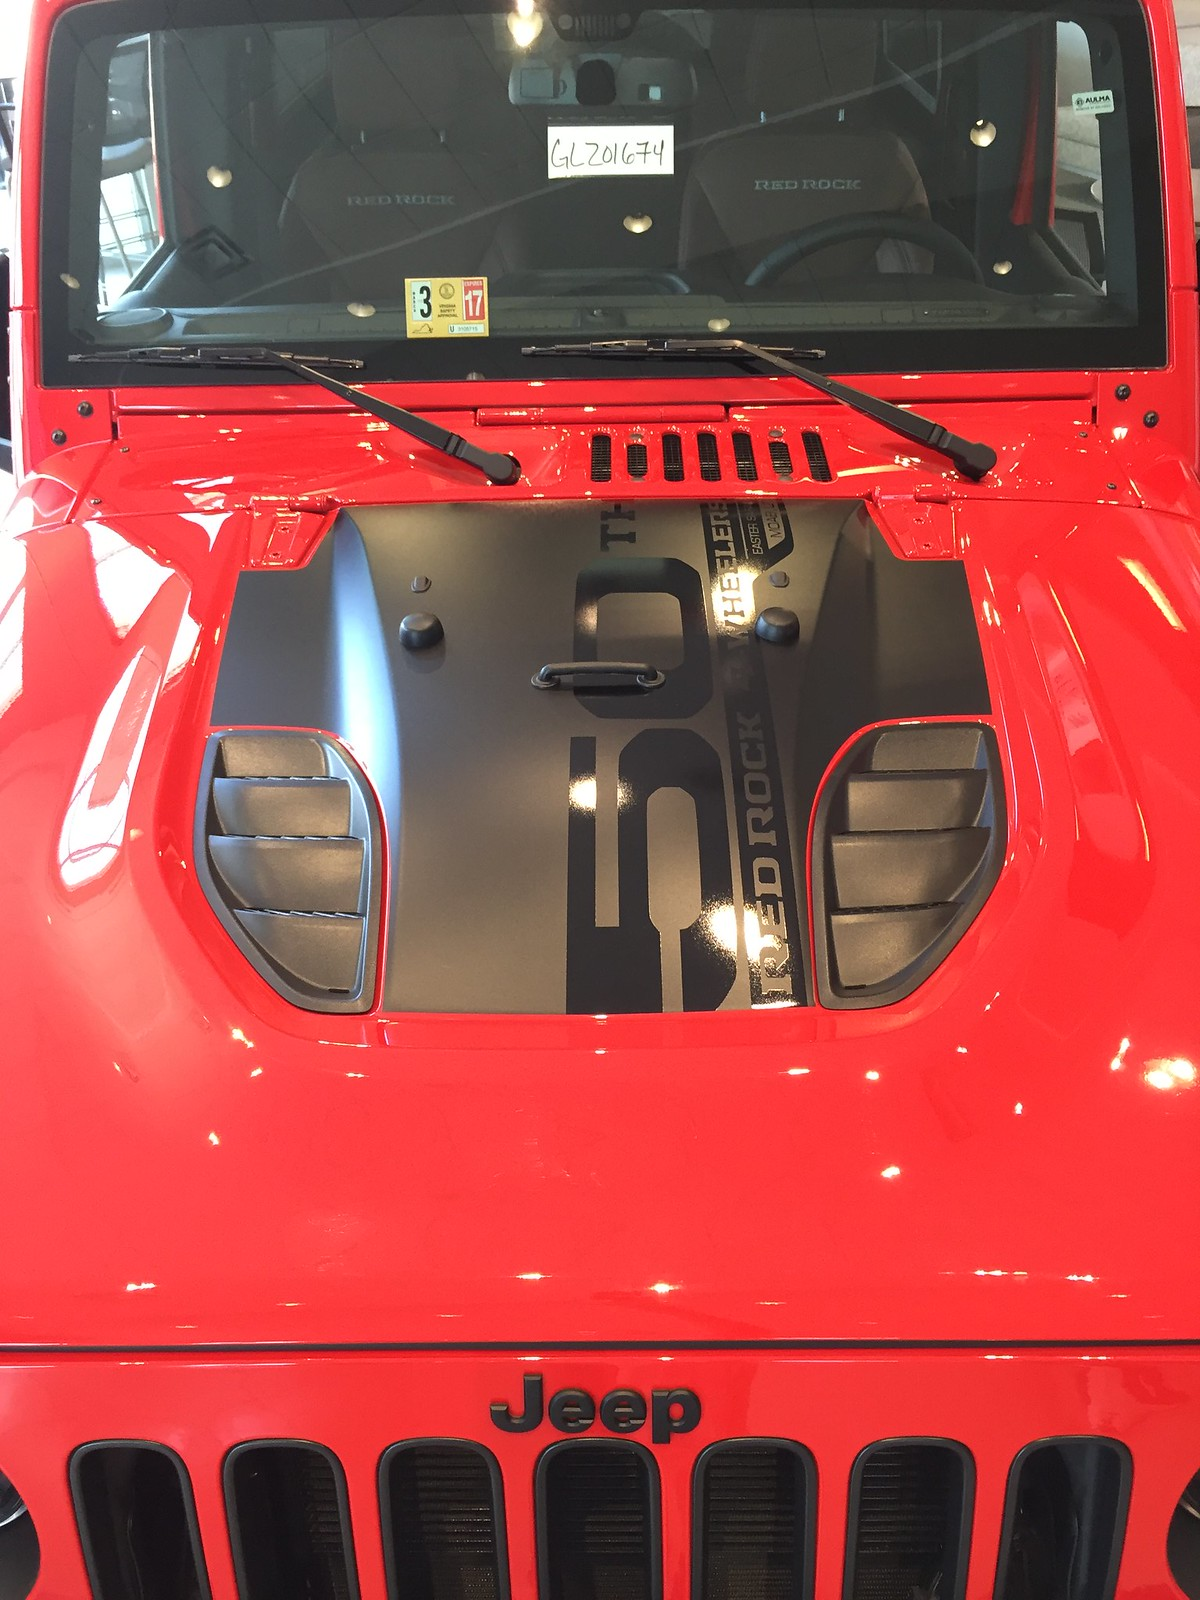 Jeep Wrangler For Sale Ontario >> Black Power Dome hood decal similar to Red Rock ? - Jeep Wrangler Forum